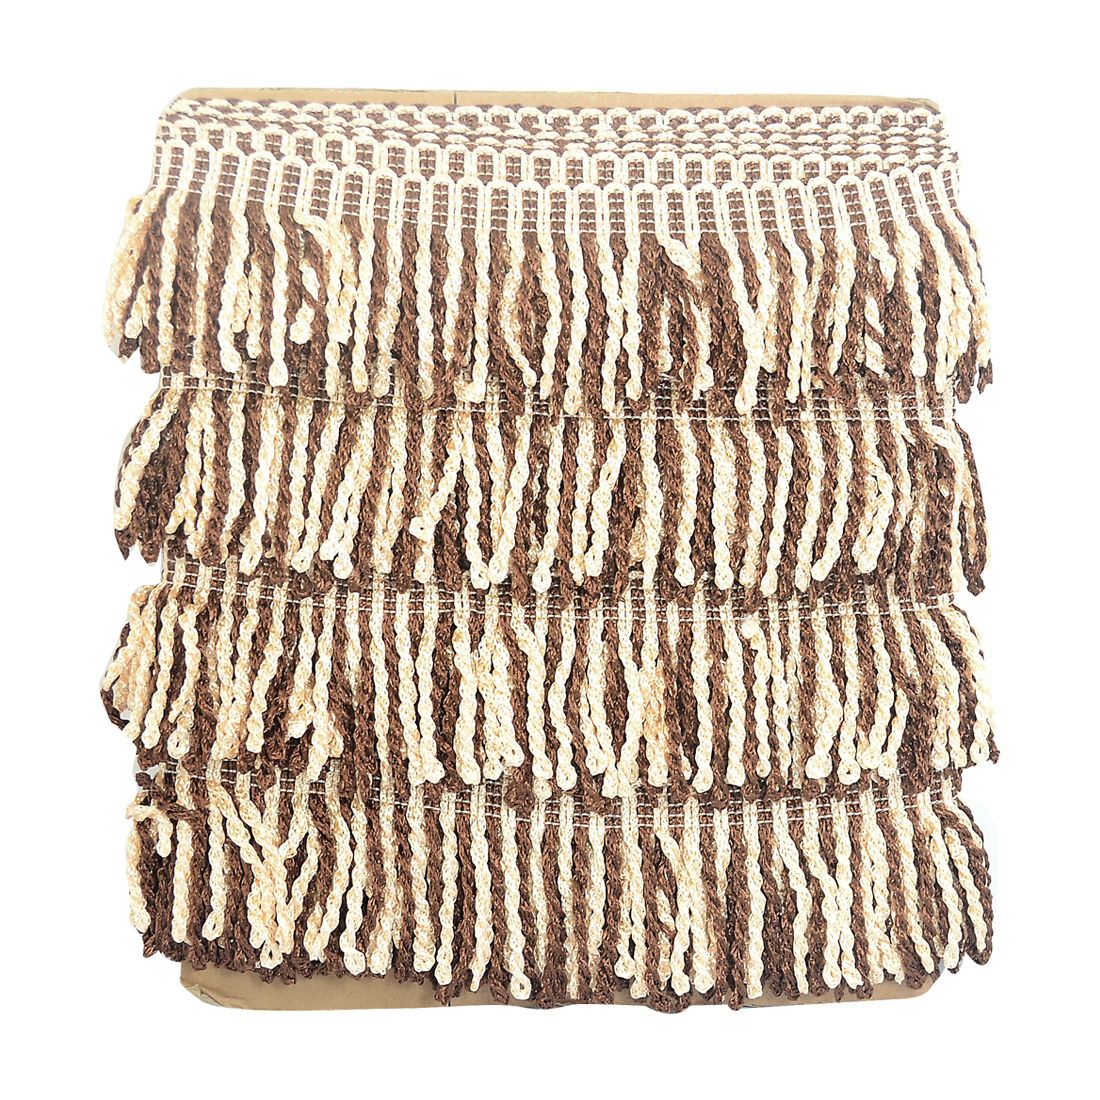 12M Curtain Trimming Edging Tassel Fringe Trim DIY Drapery Brown Beige